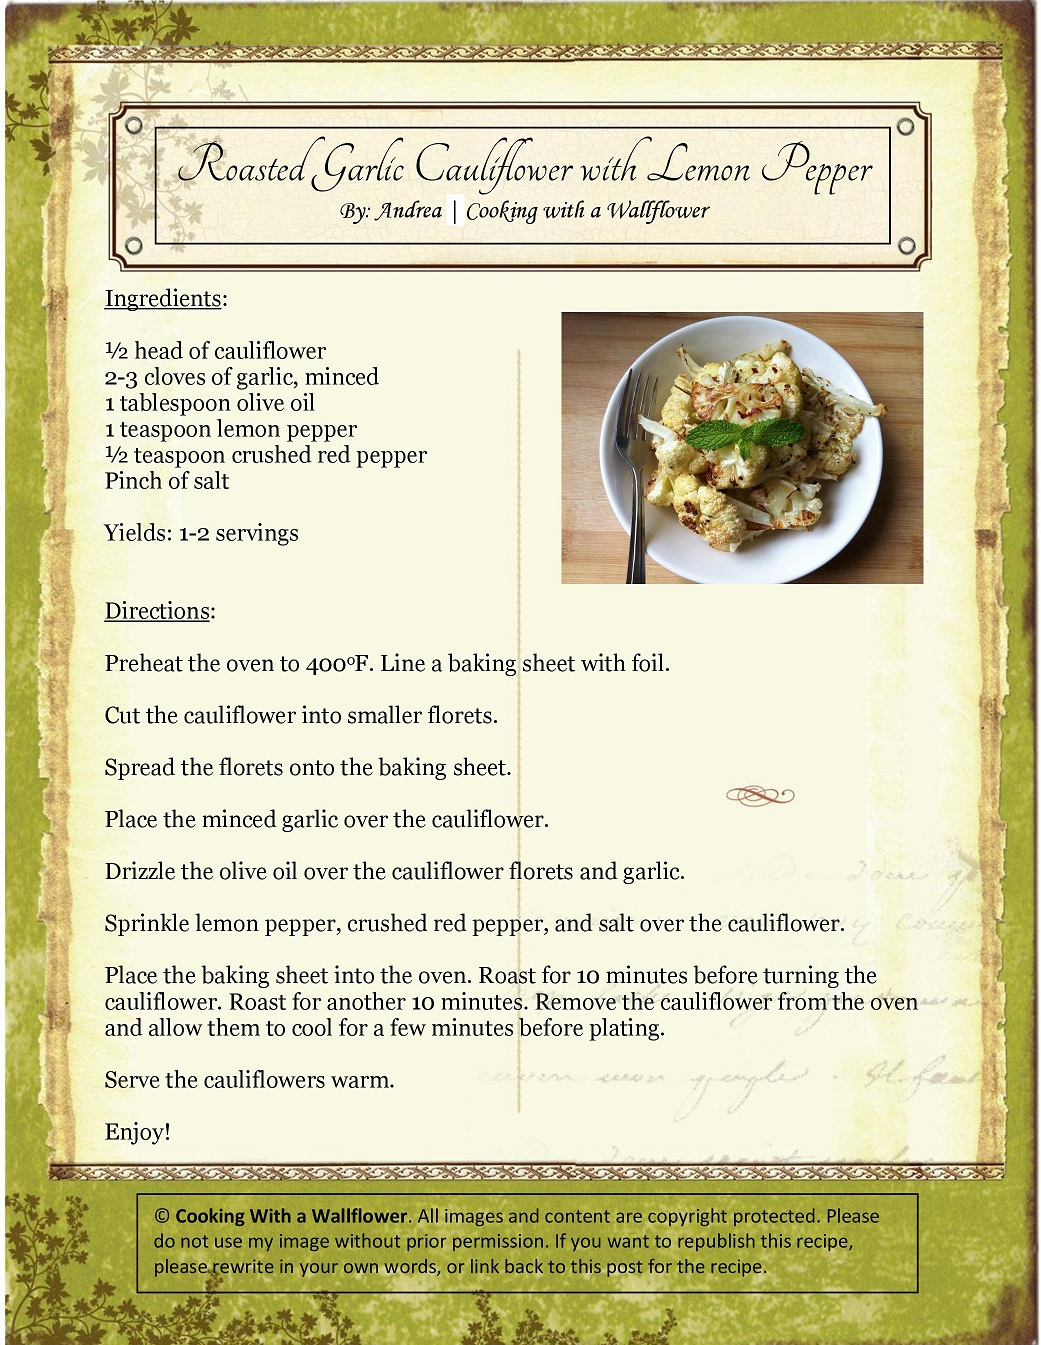 Roasted Garlic Cauliflower with Lemon Pepper Recipe Card